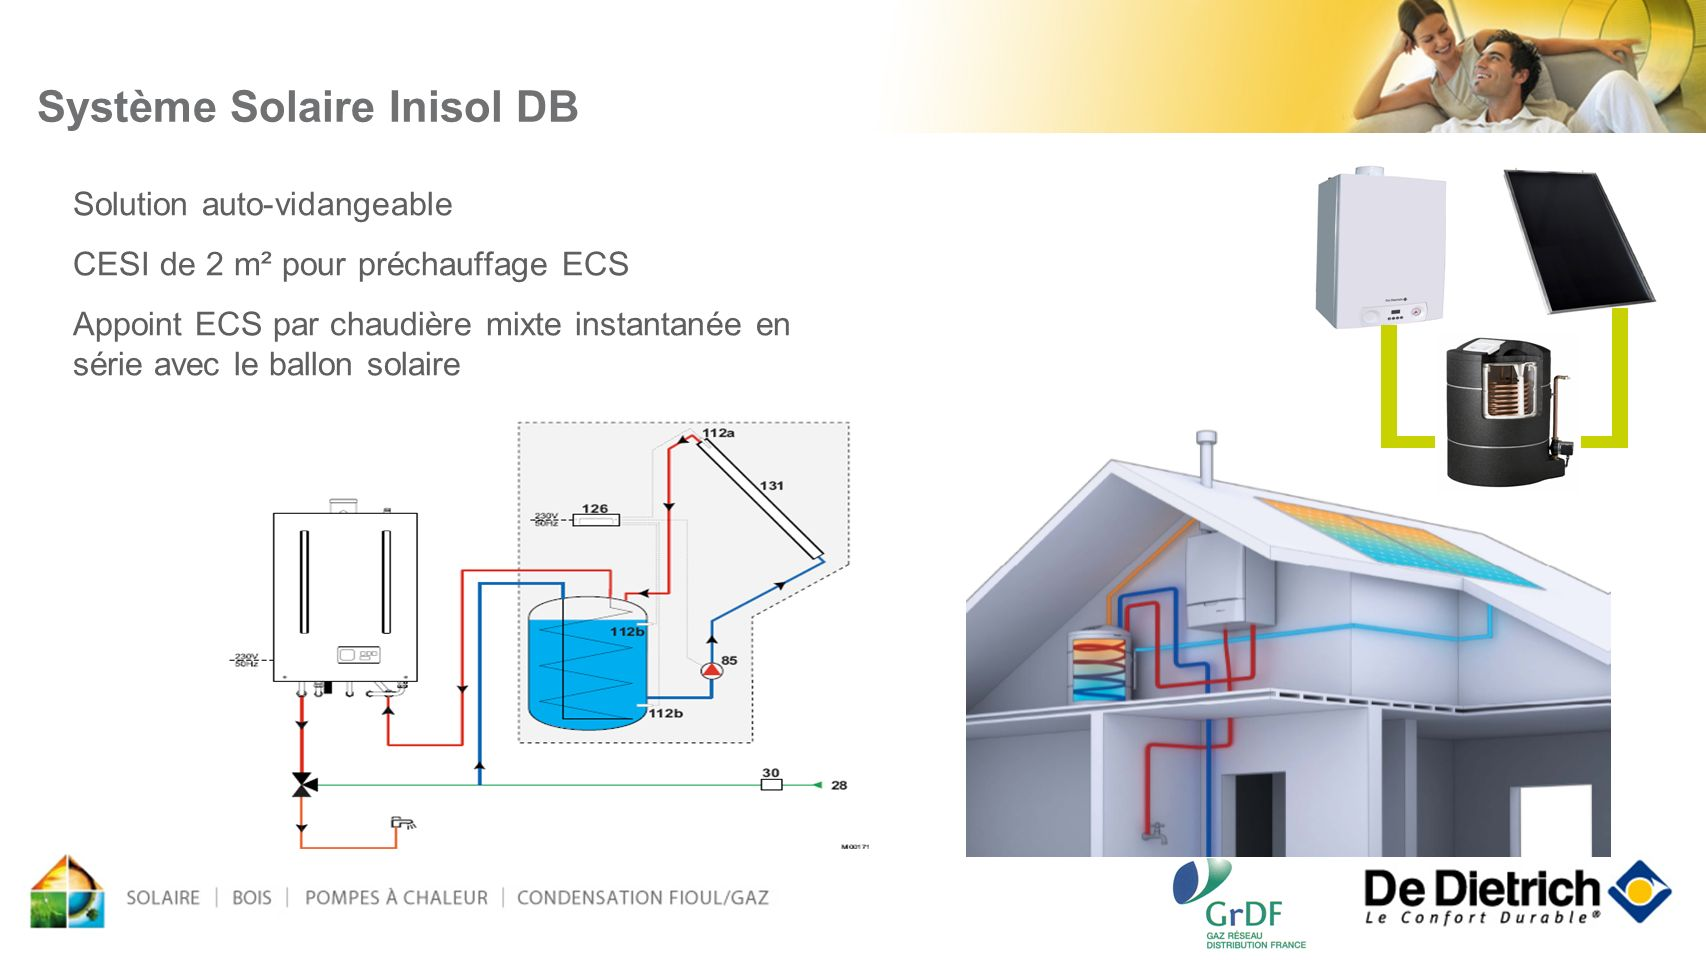 Système Solaire Inisol DB